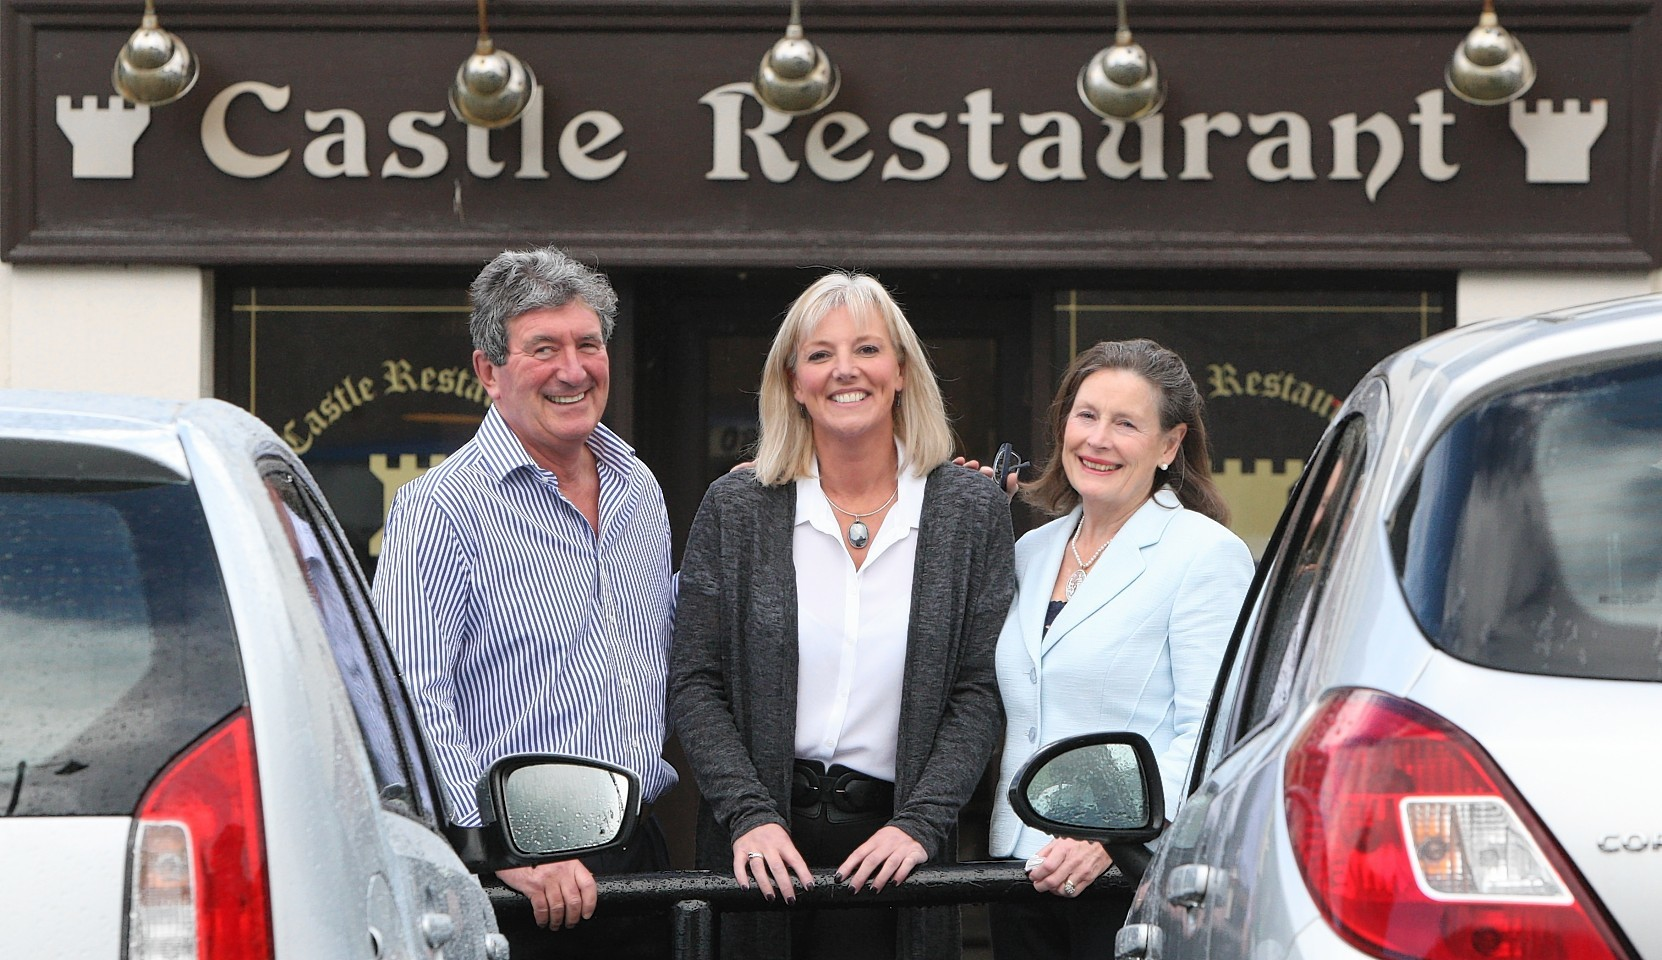 Katie MacKinnon, middle, new owner of the Castle Restaurant in Inverness, with previous owners Christine and Brian Lipton.